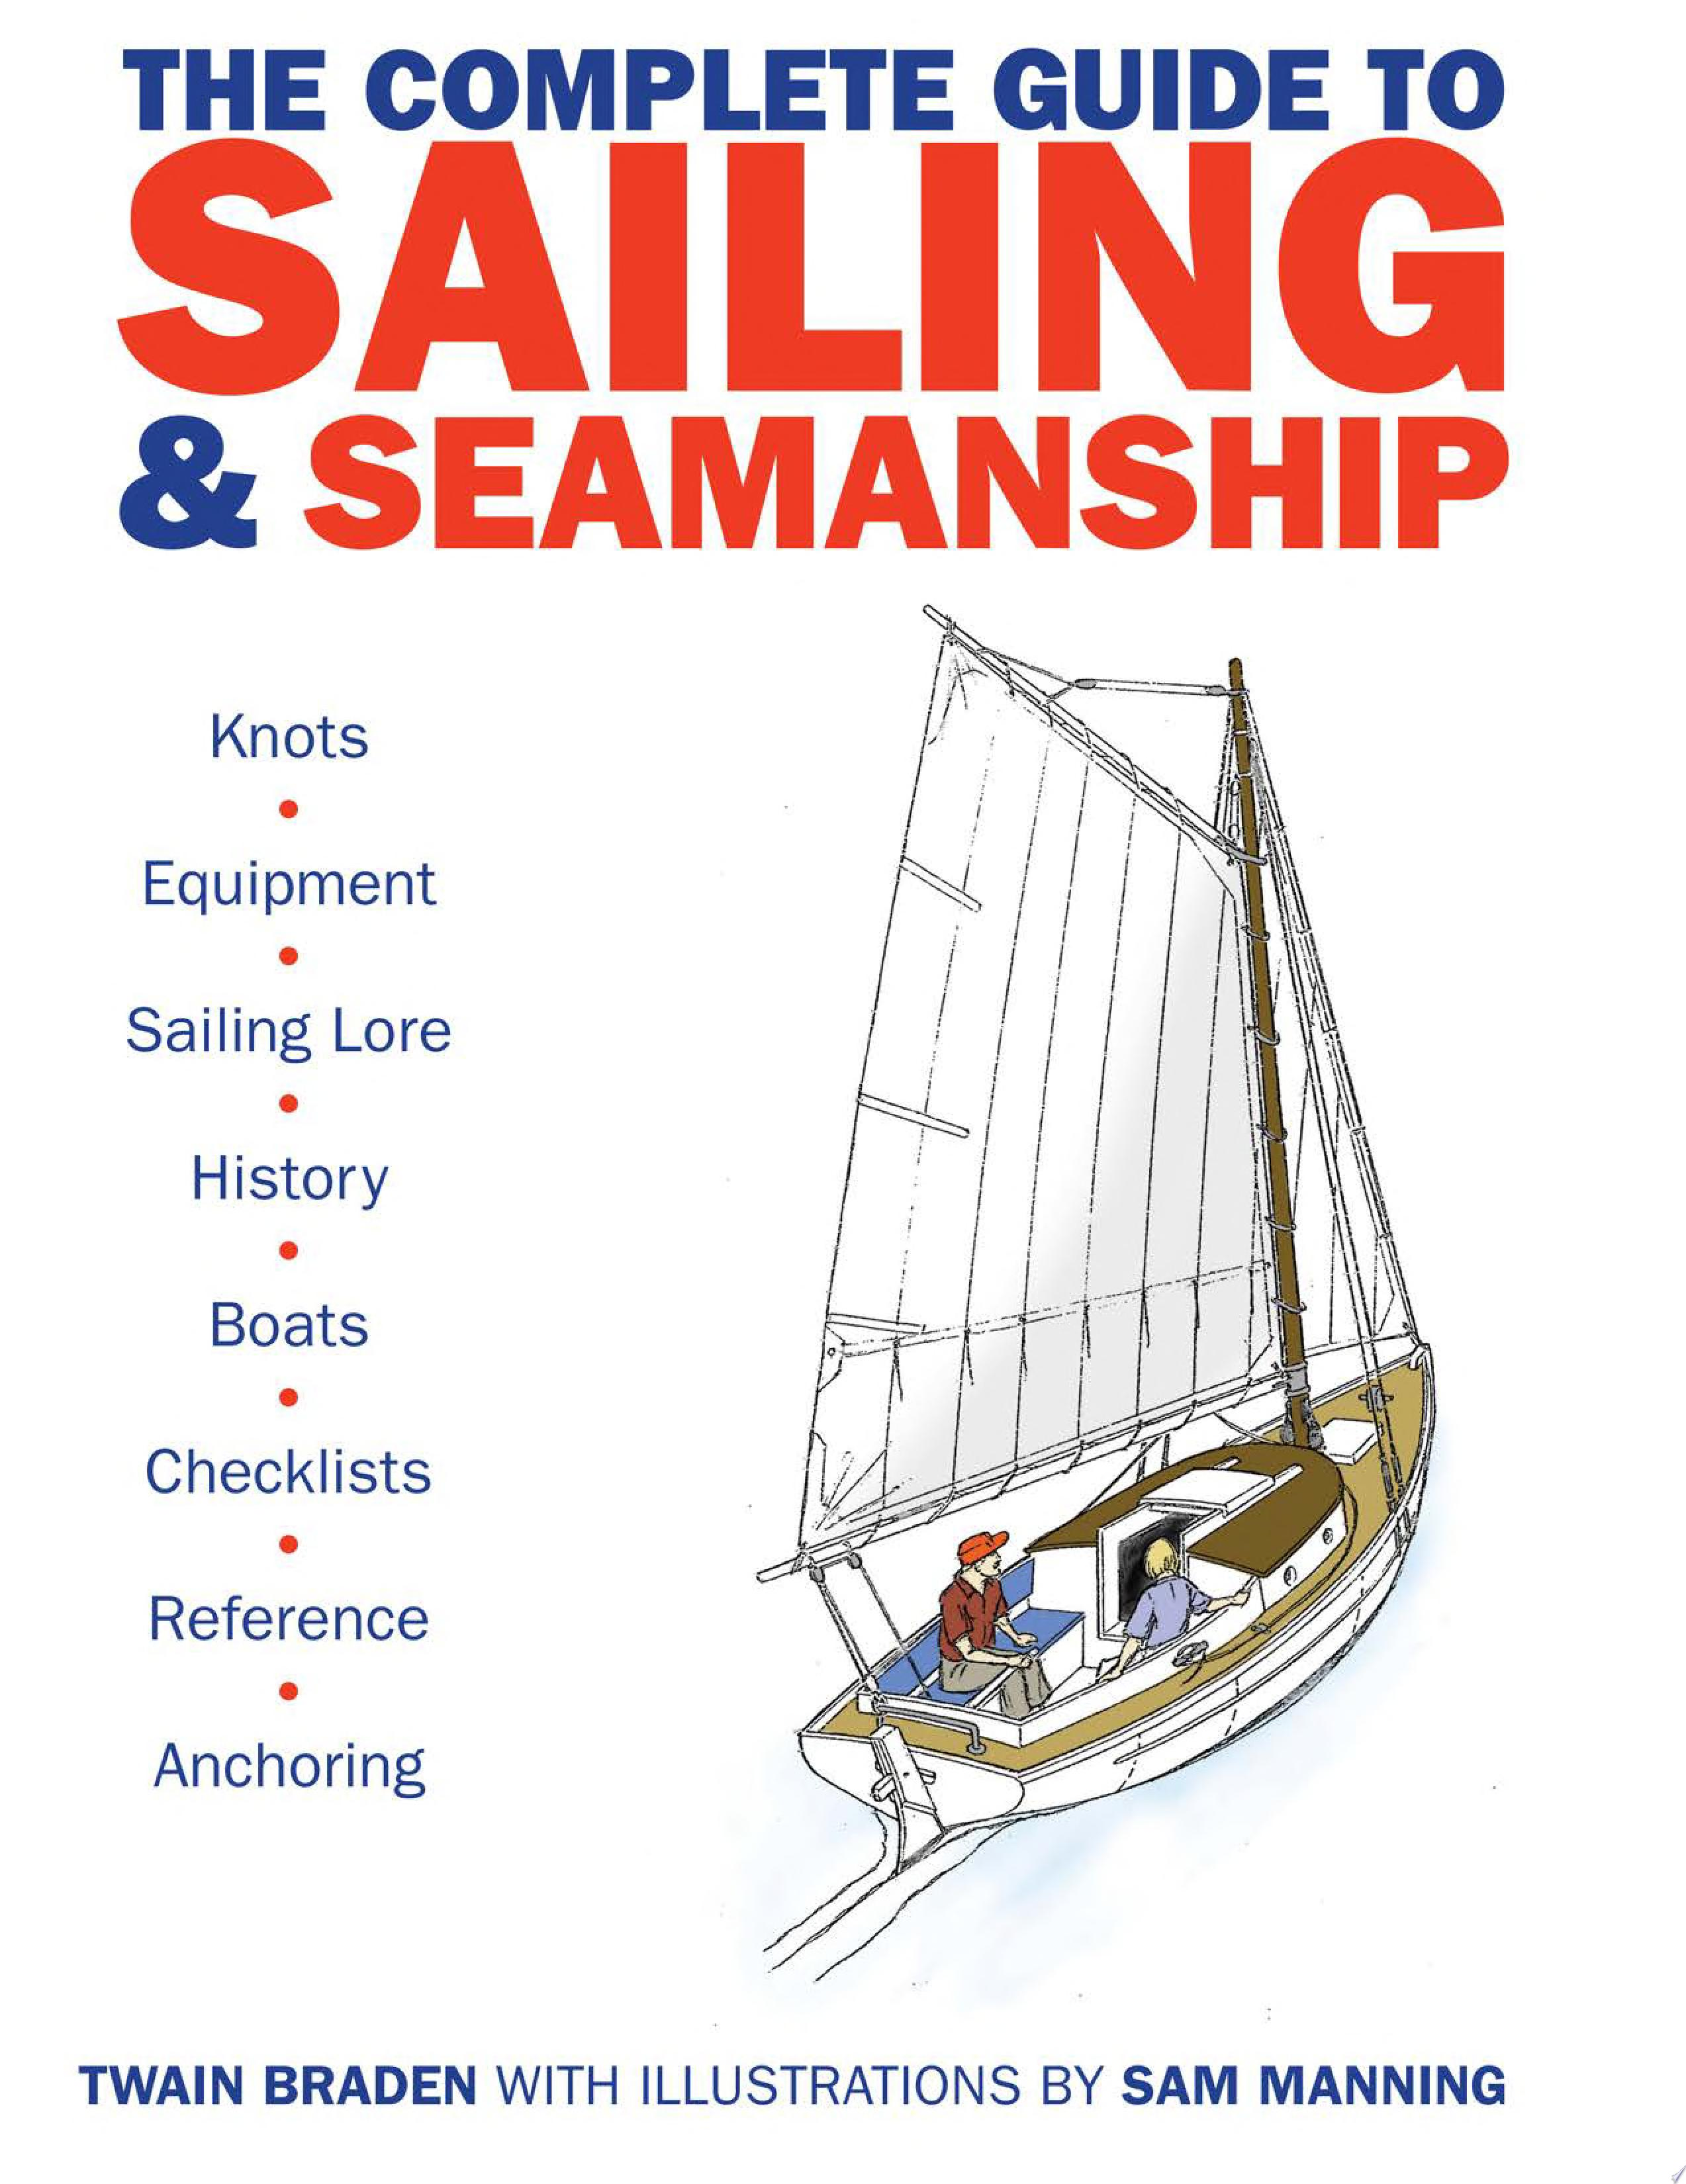 The Complete Guide to Sailing   Seamanship